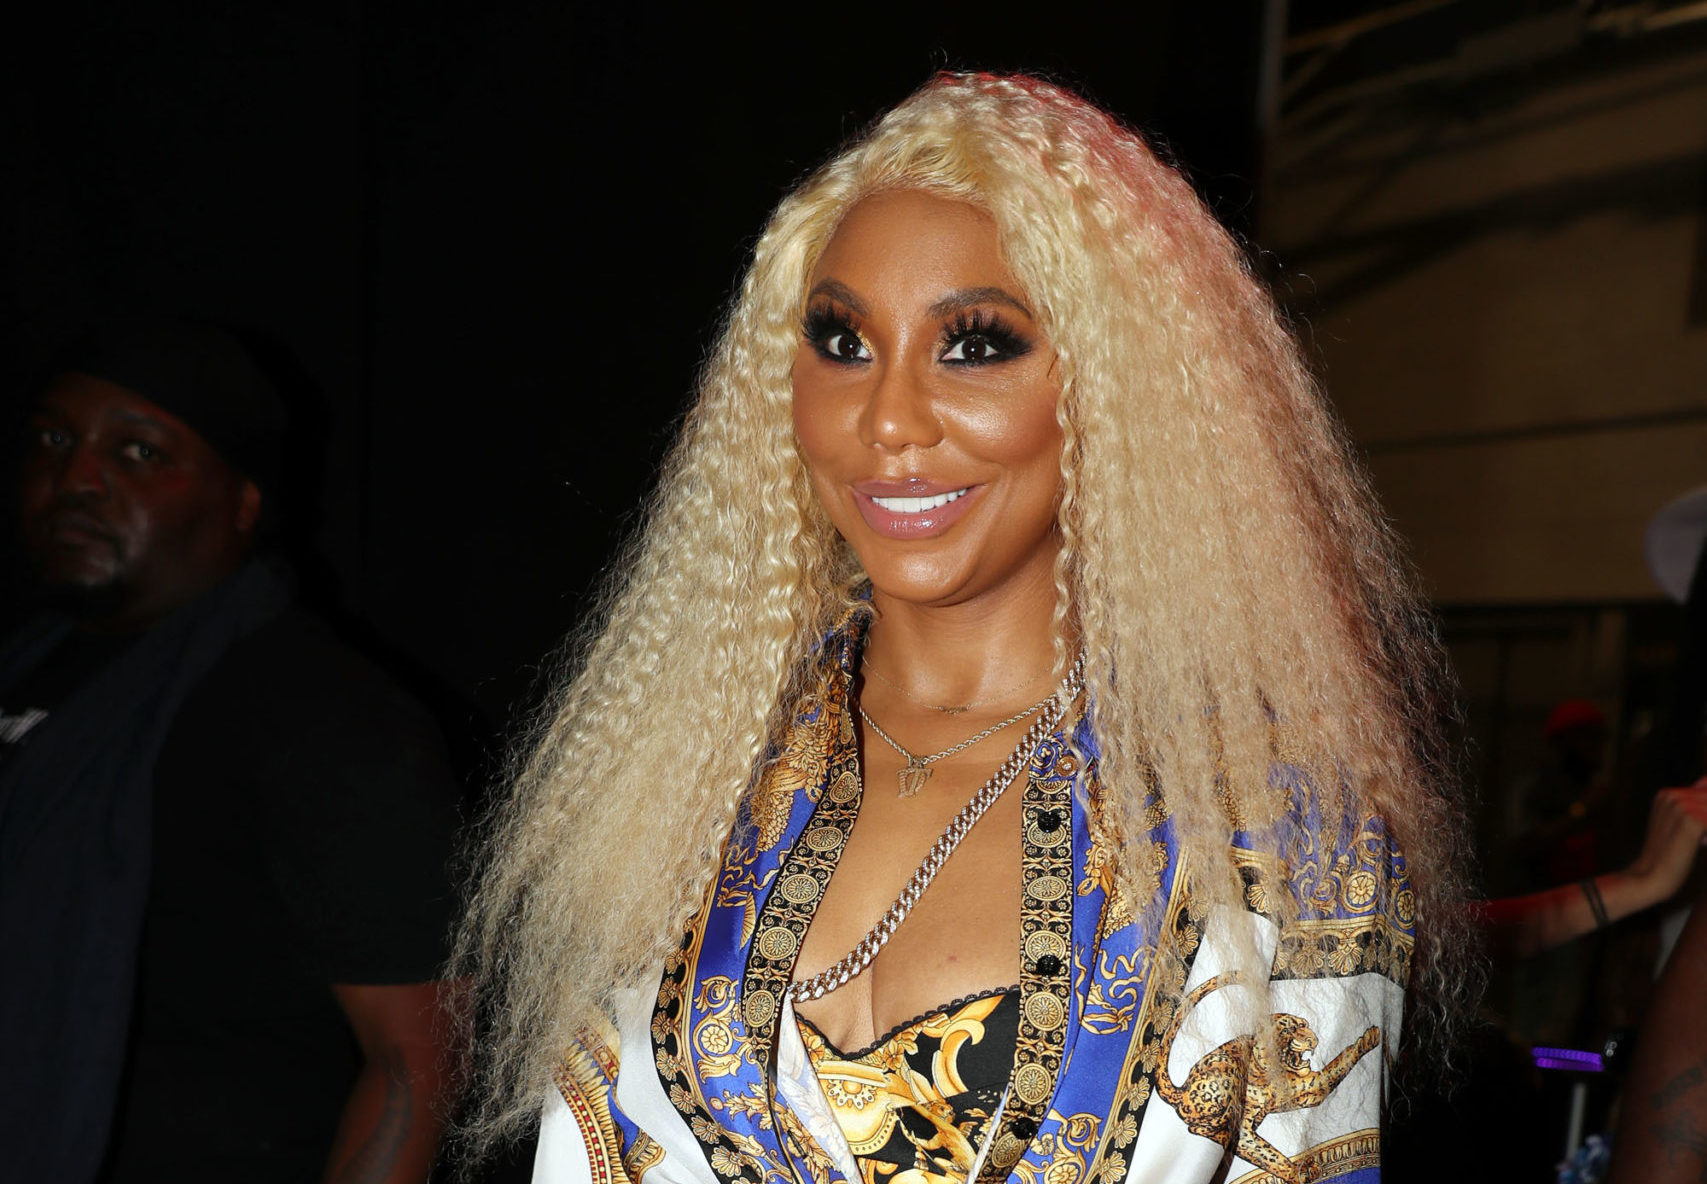 Tamar Braxton Tells Lady Fans To Turn Their Humiliation Into Motivation